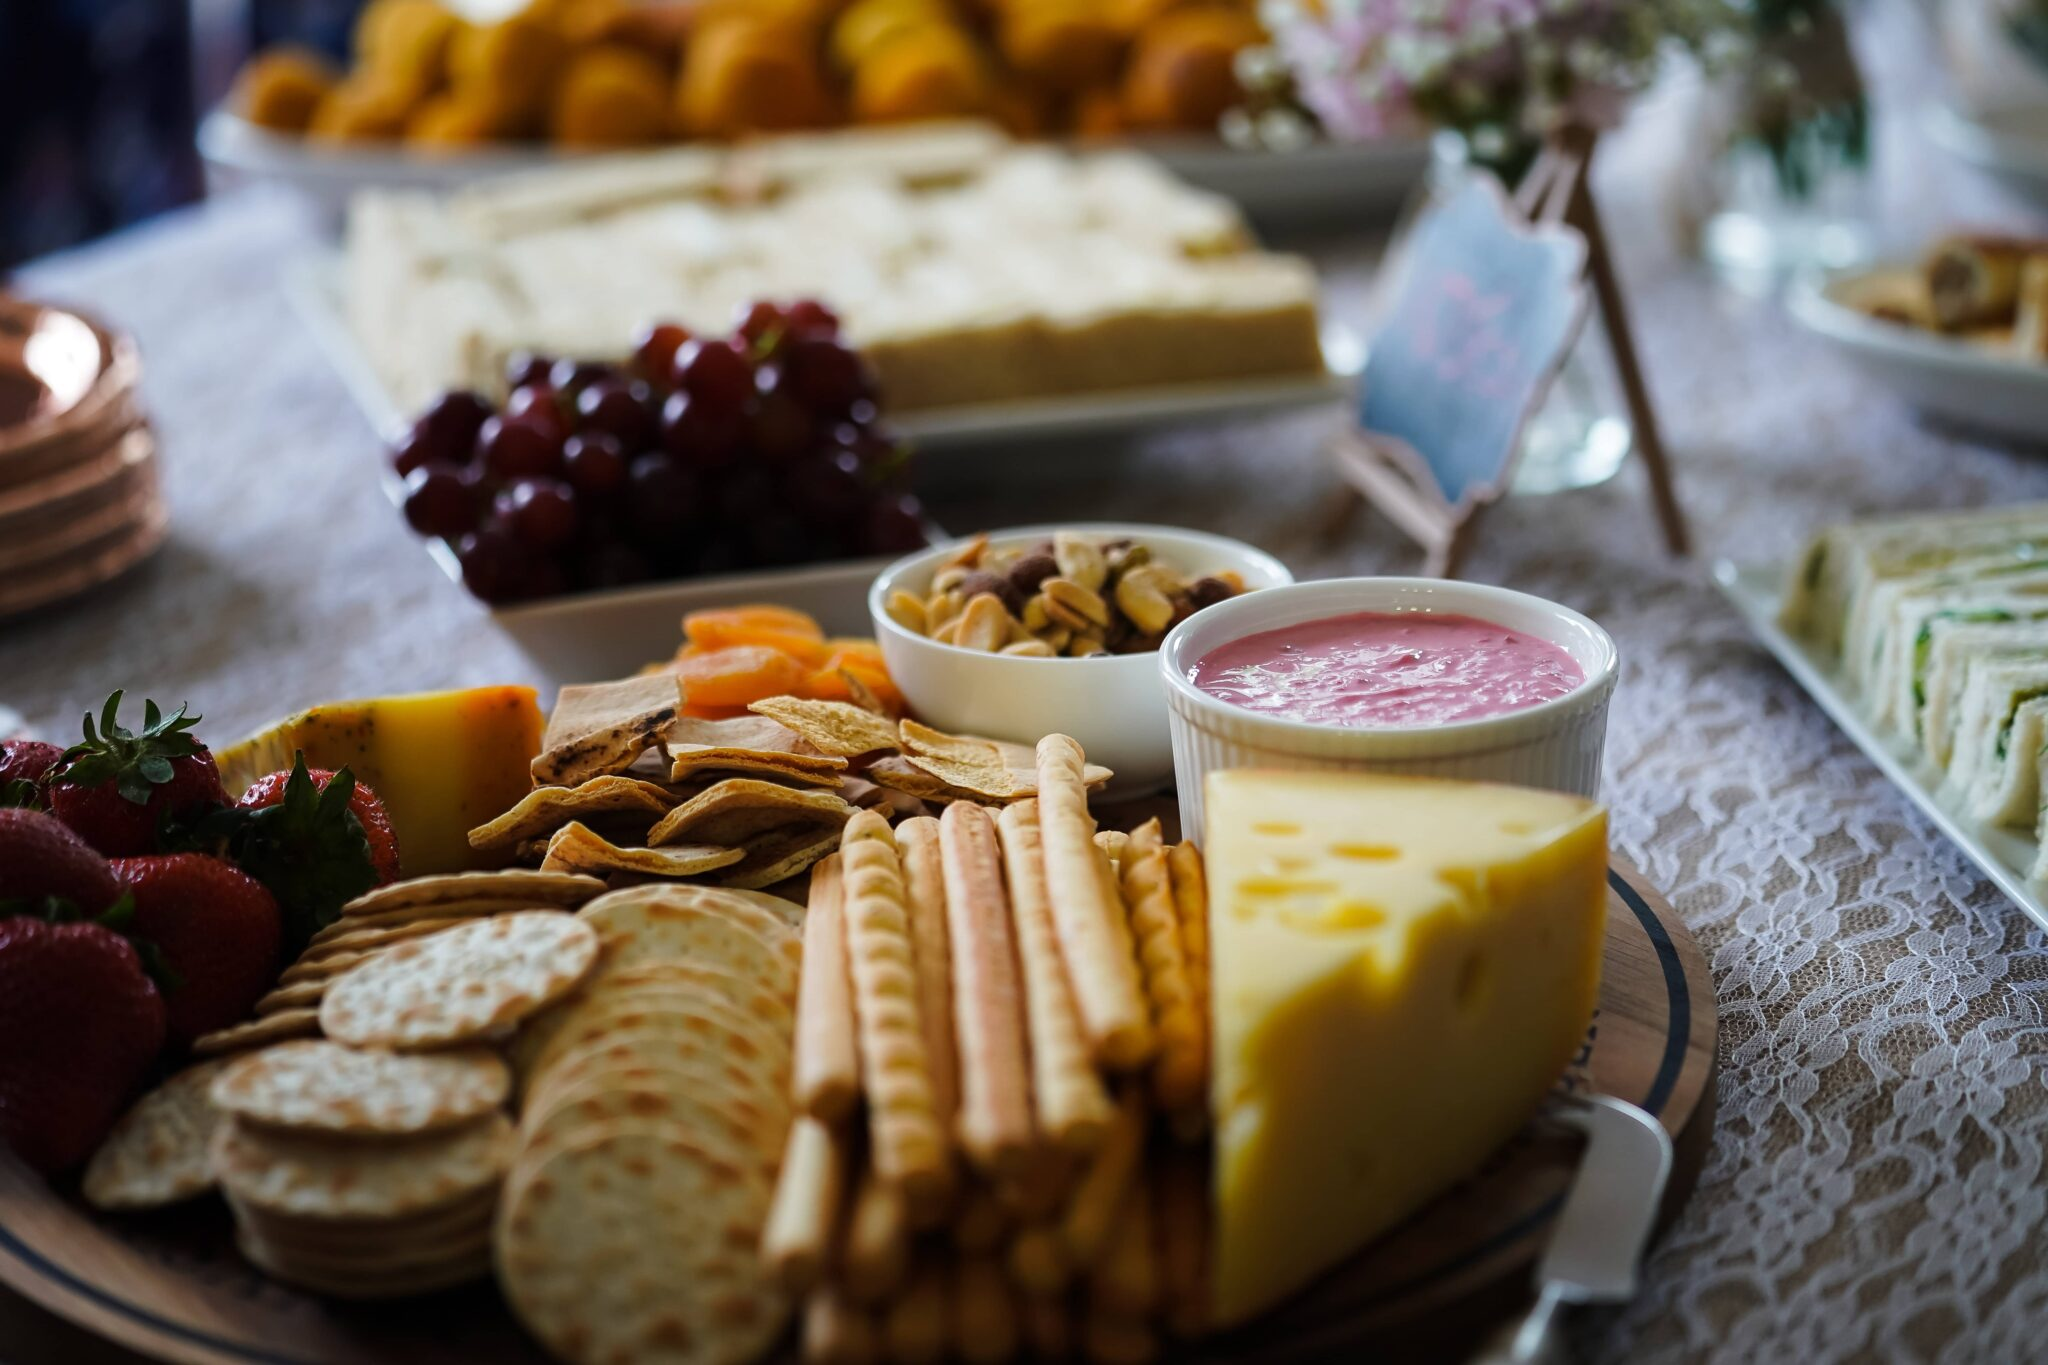 Know the snacks to serve with whisky